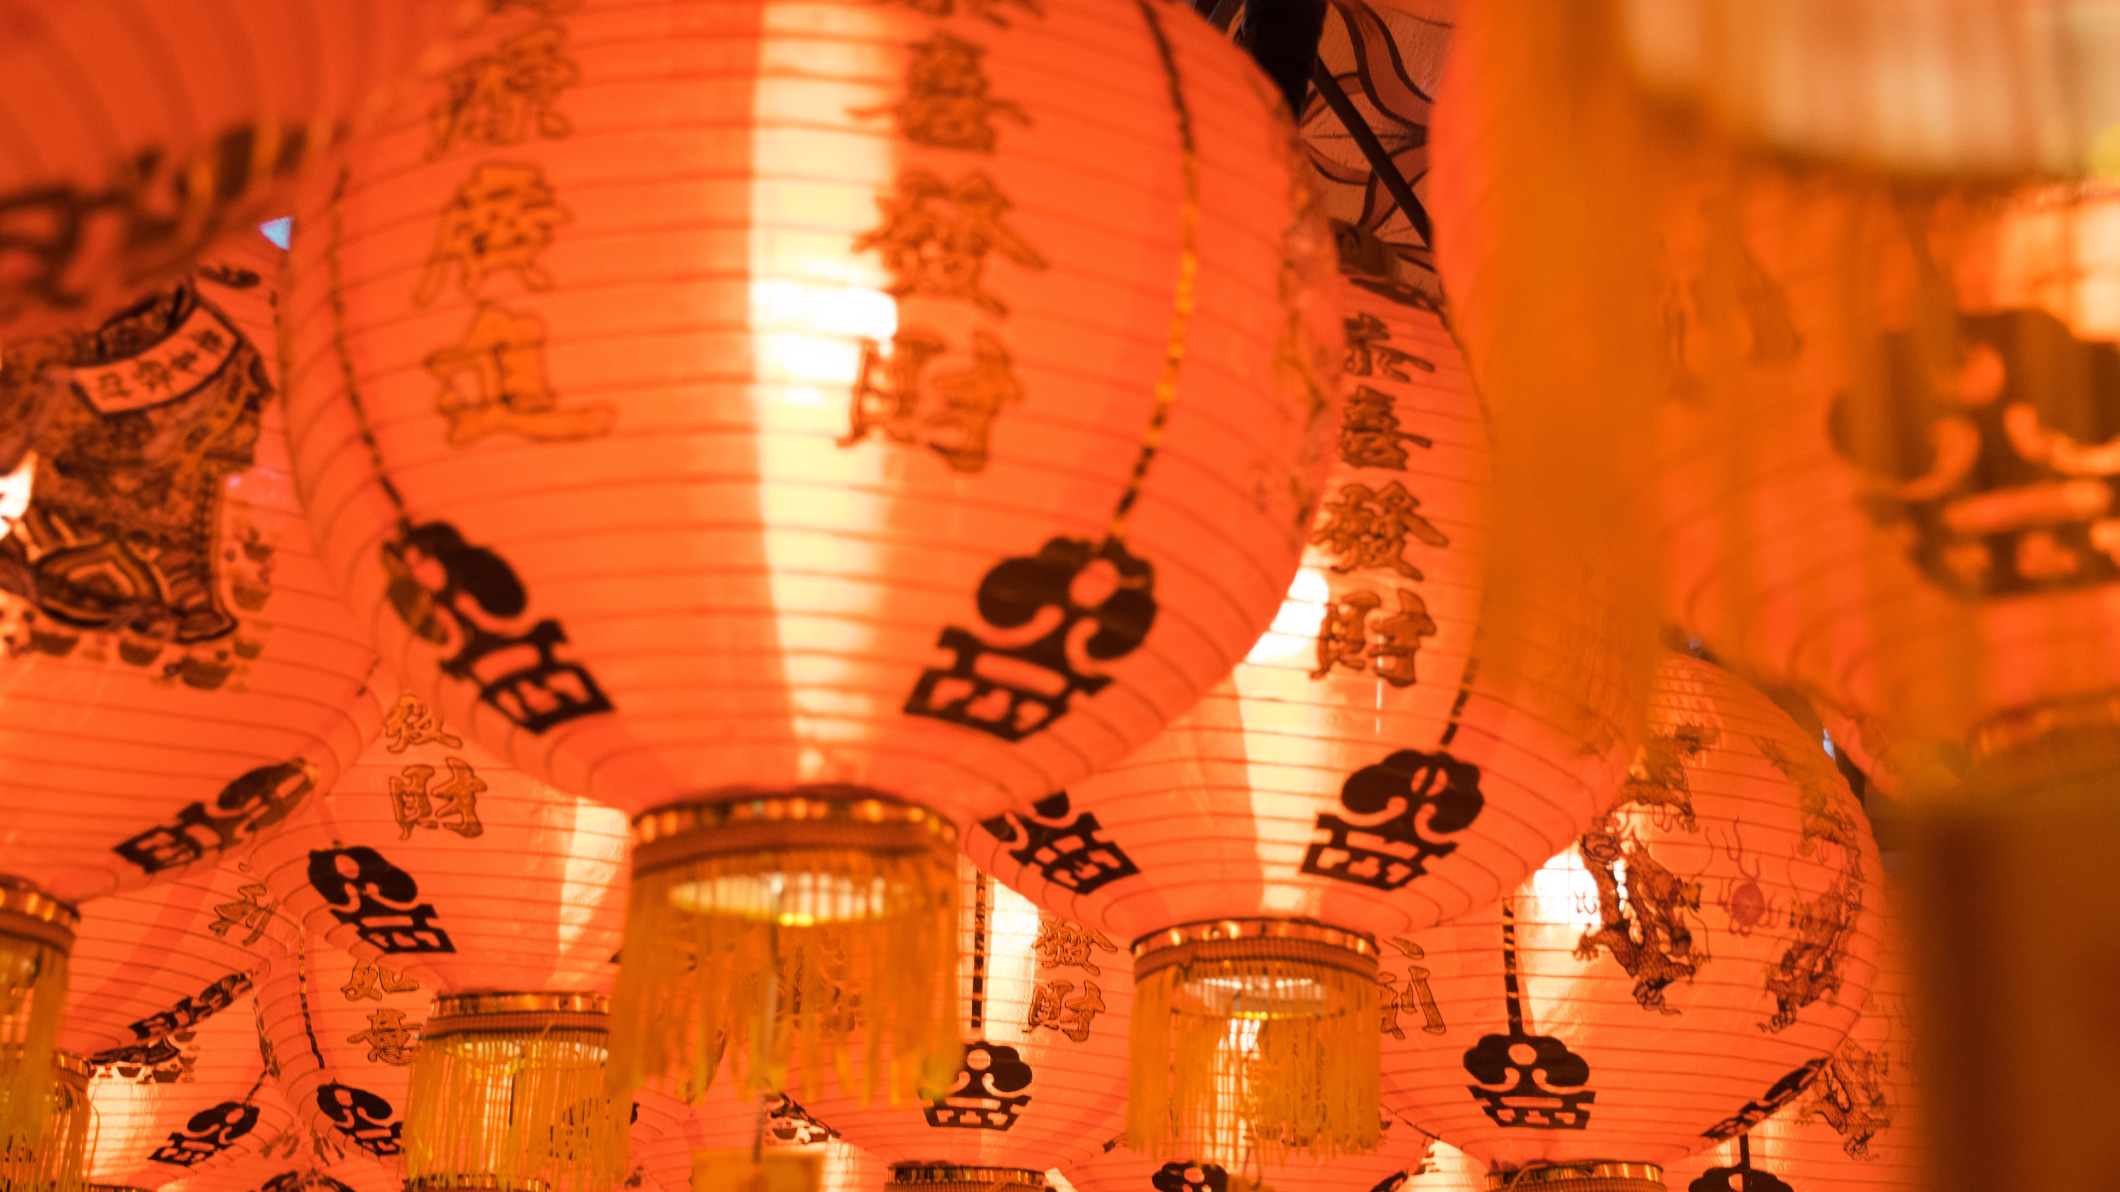 HWhat to bring if you are invited to a Chinese New Year visit?